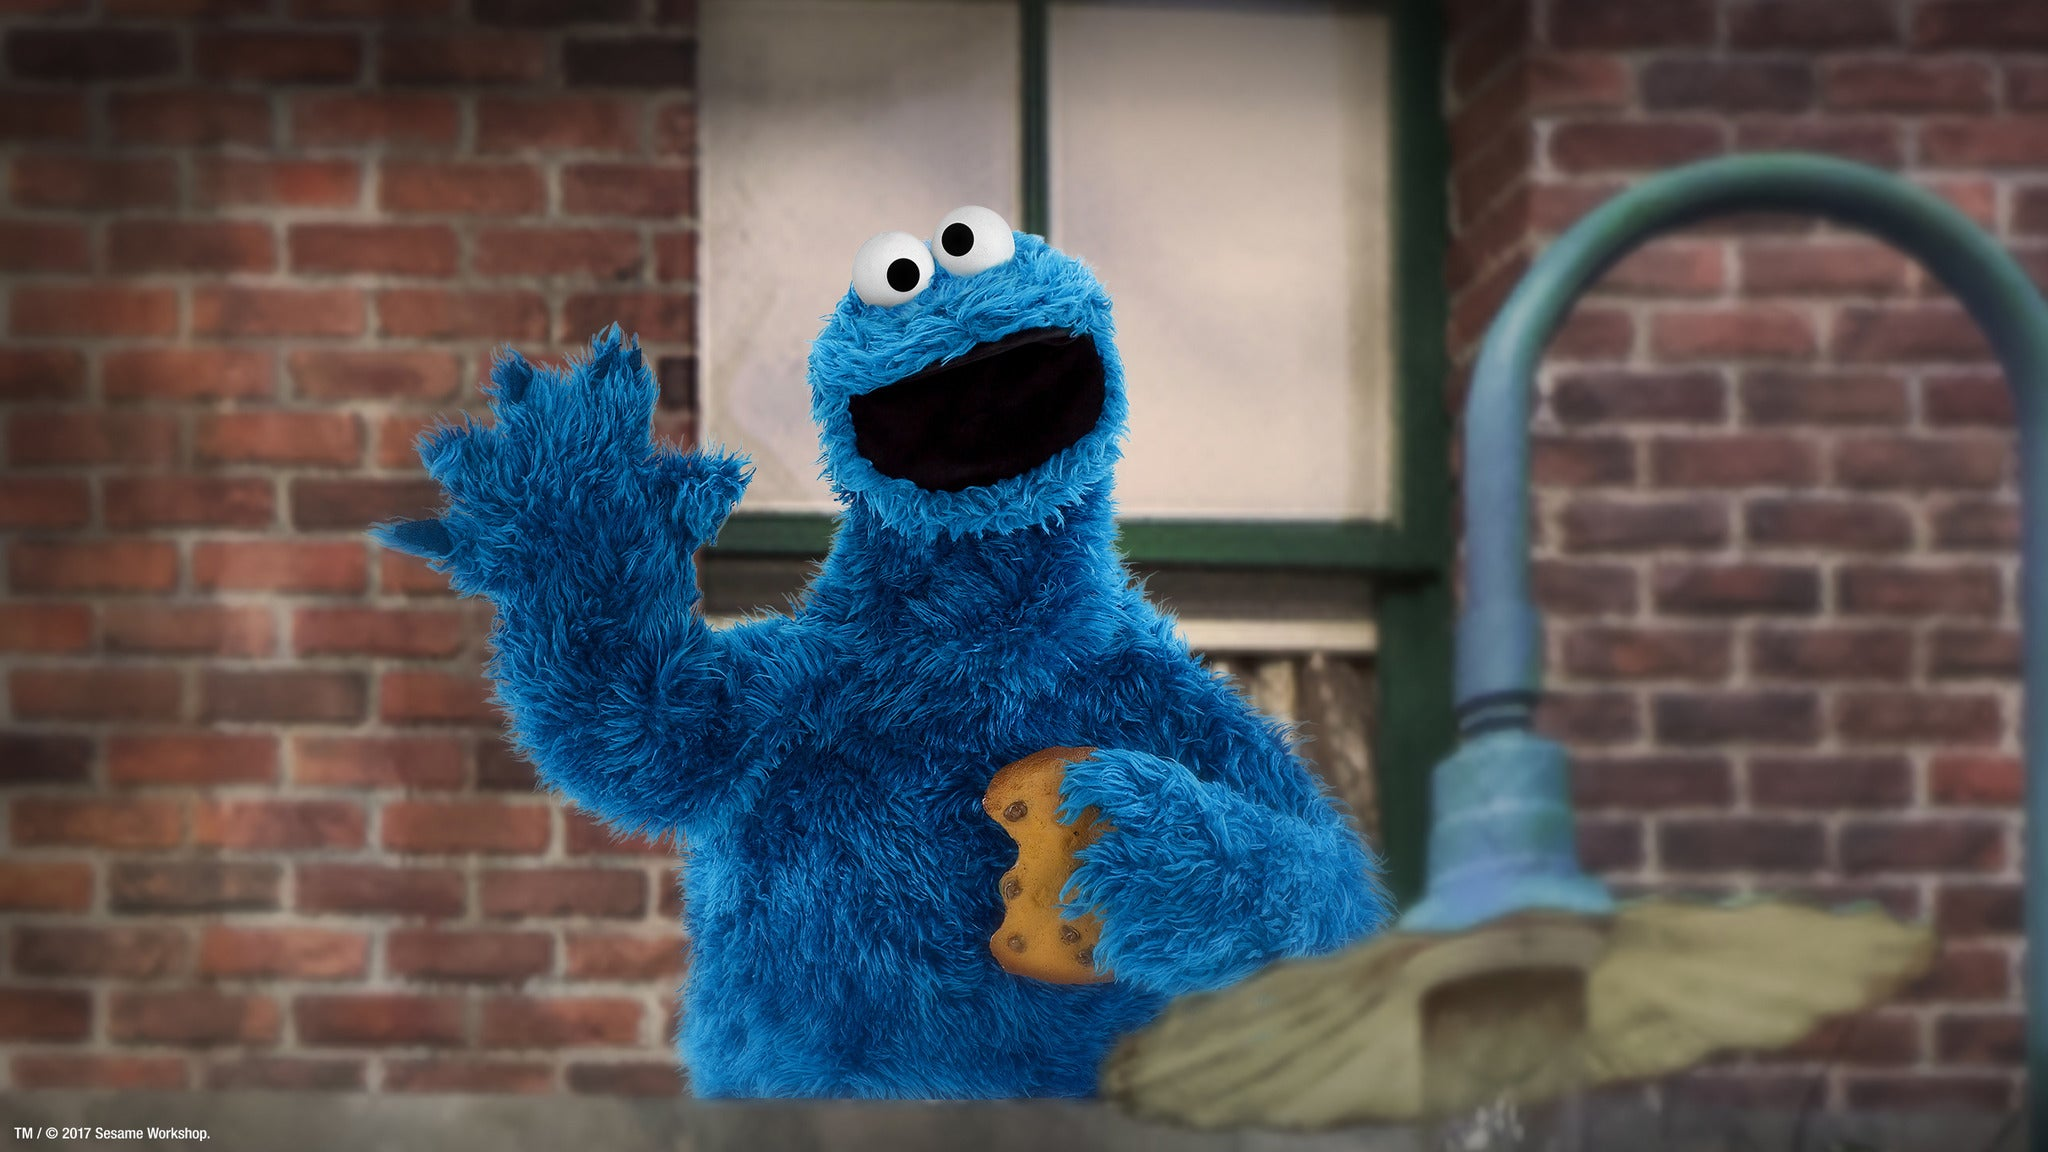 Sesame Street Live!: Preshow Experience From 9:15am-10:00am